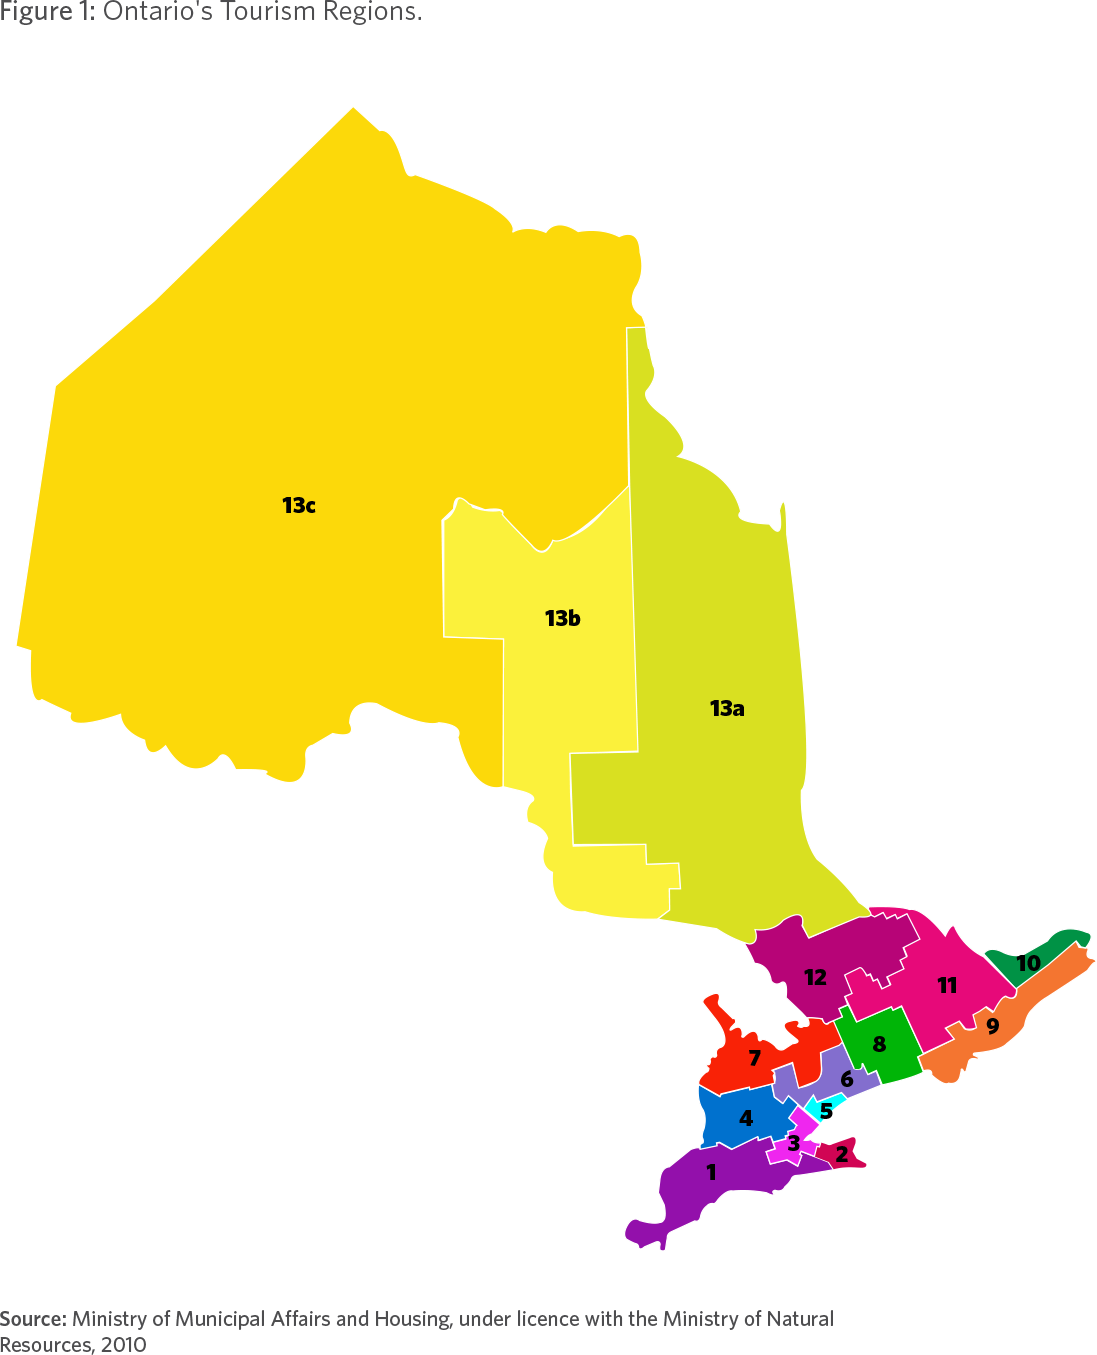 Figure 1: Ontario's Tourism Regions. Source: Ministry of Municipal Affairs and Housing, under licence with the Ministry of Natural Resources, 2010